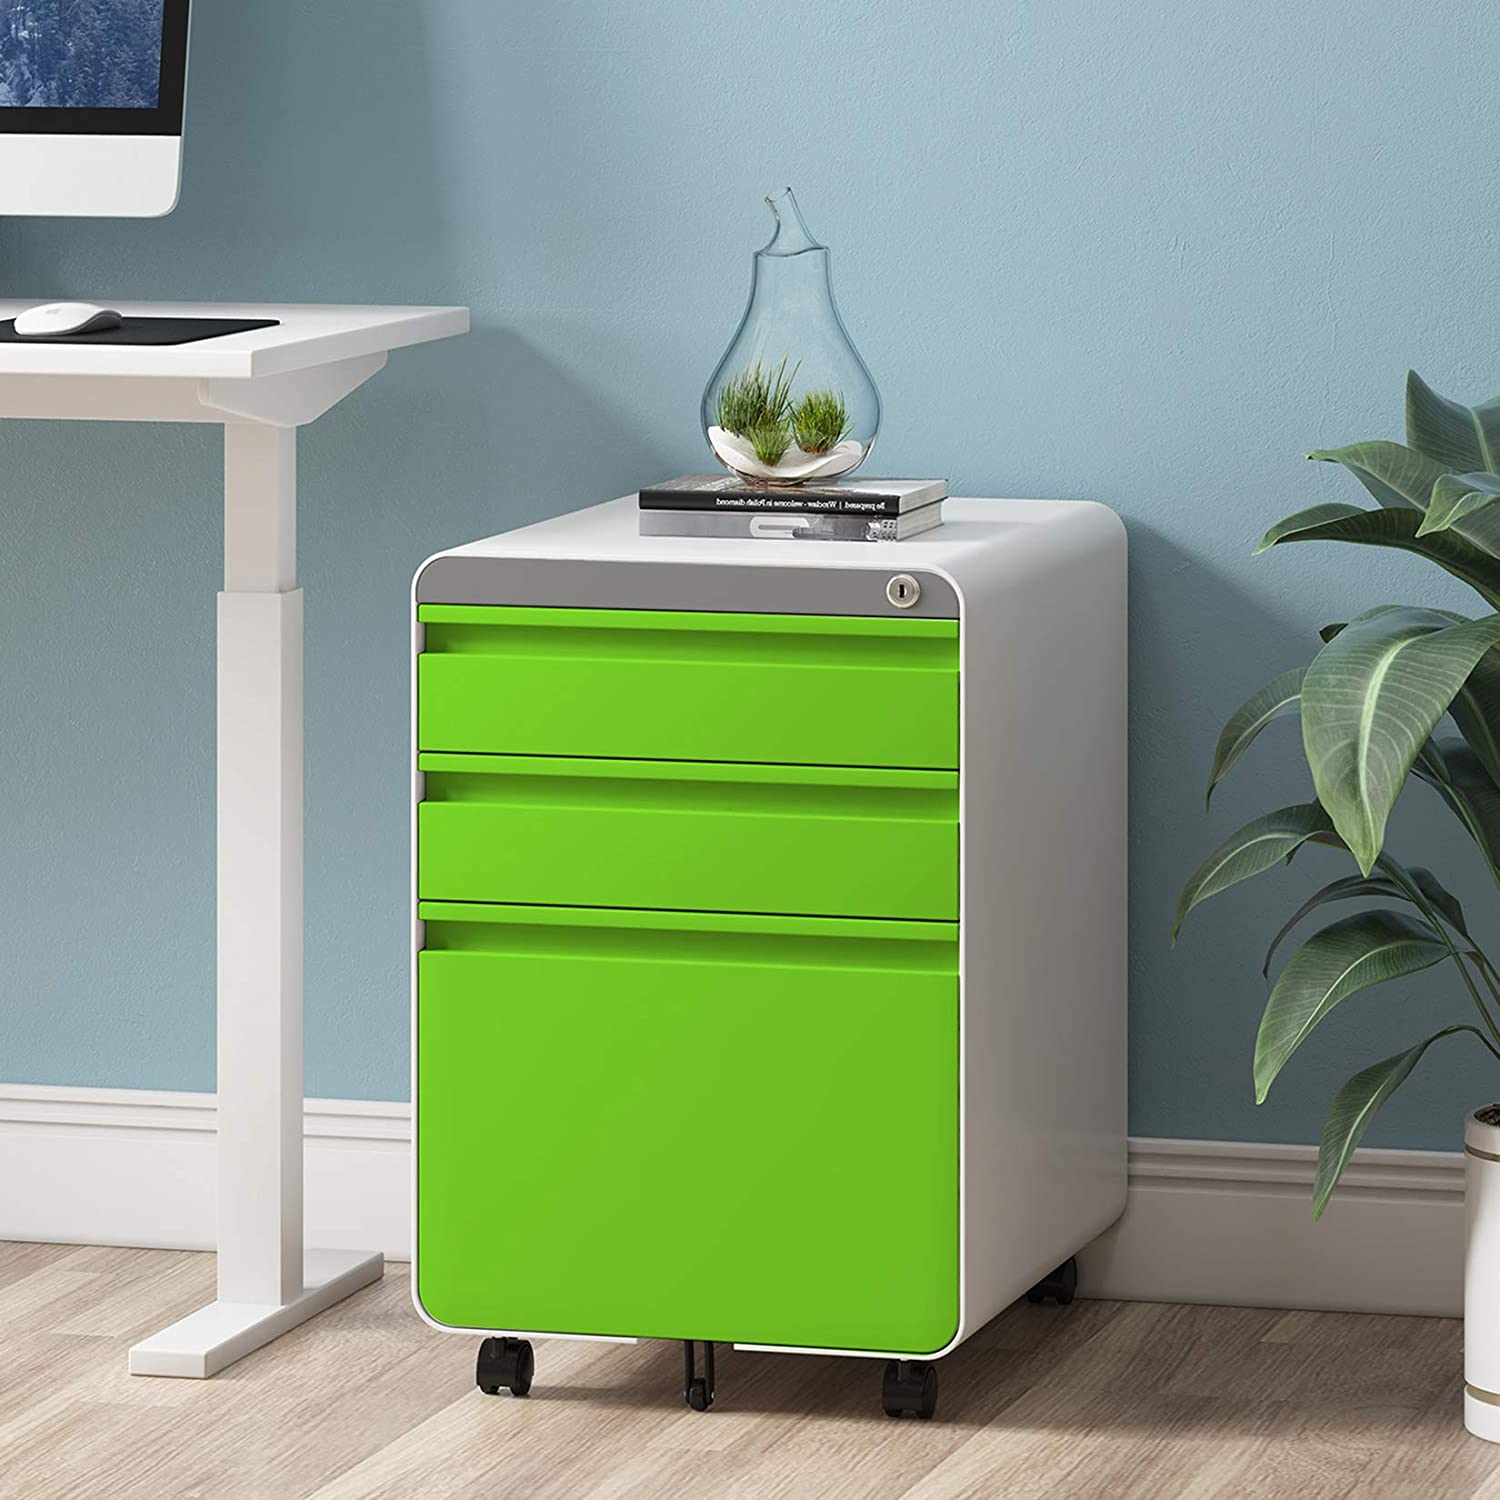 Dprodo 3 Drawers Mobile File Cabinet with Lock, Metal Filing Cabinet for Legal & Letter Size, Fully Assembled Locking File Cabinet for Home & Office,Green